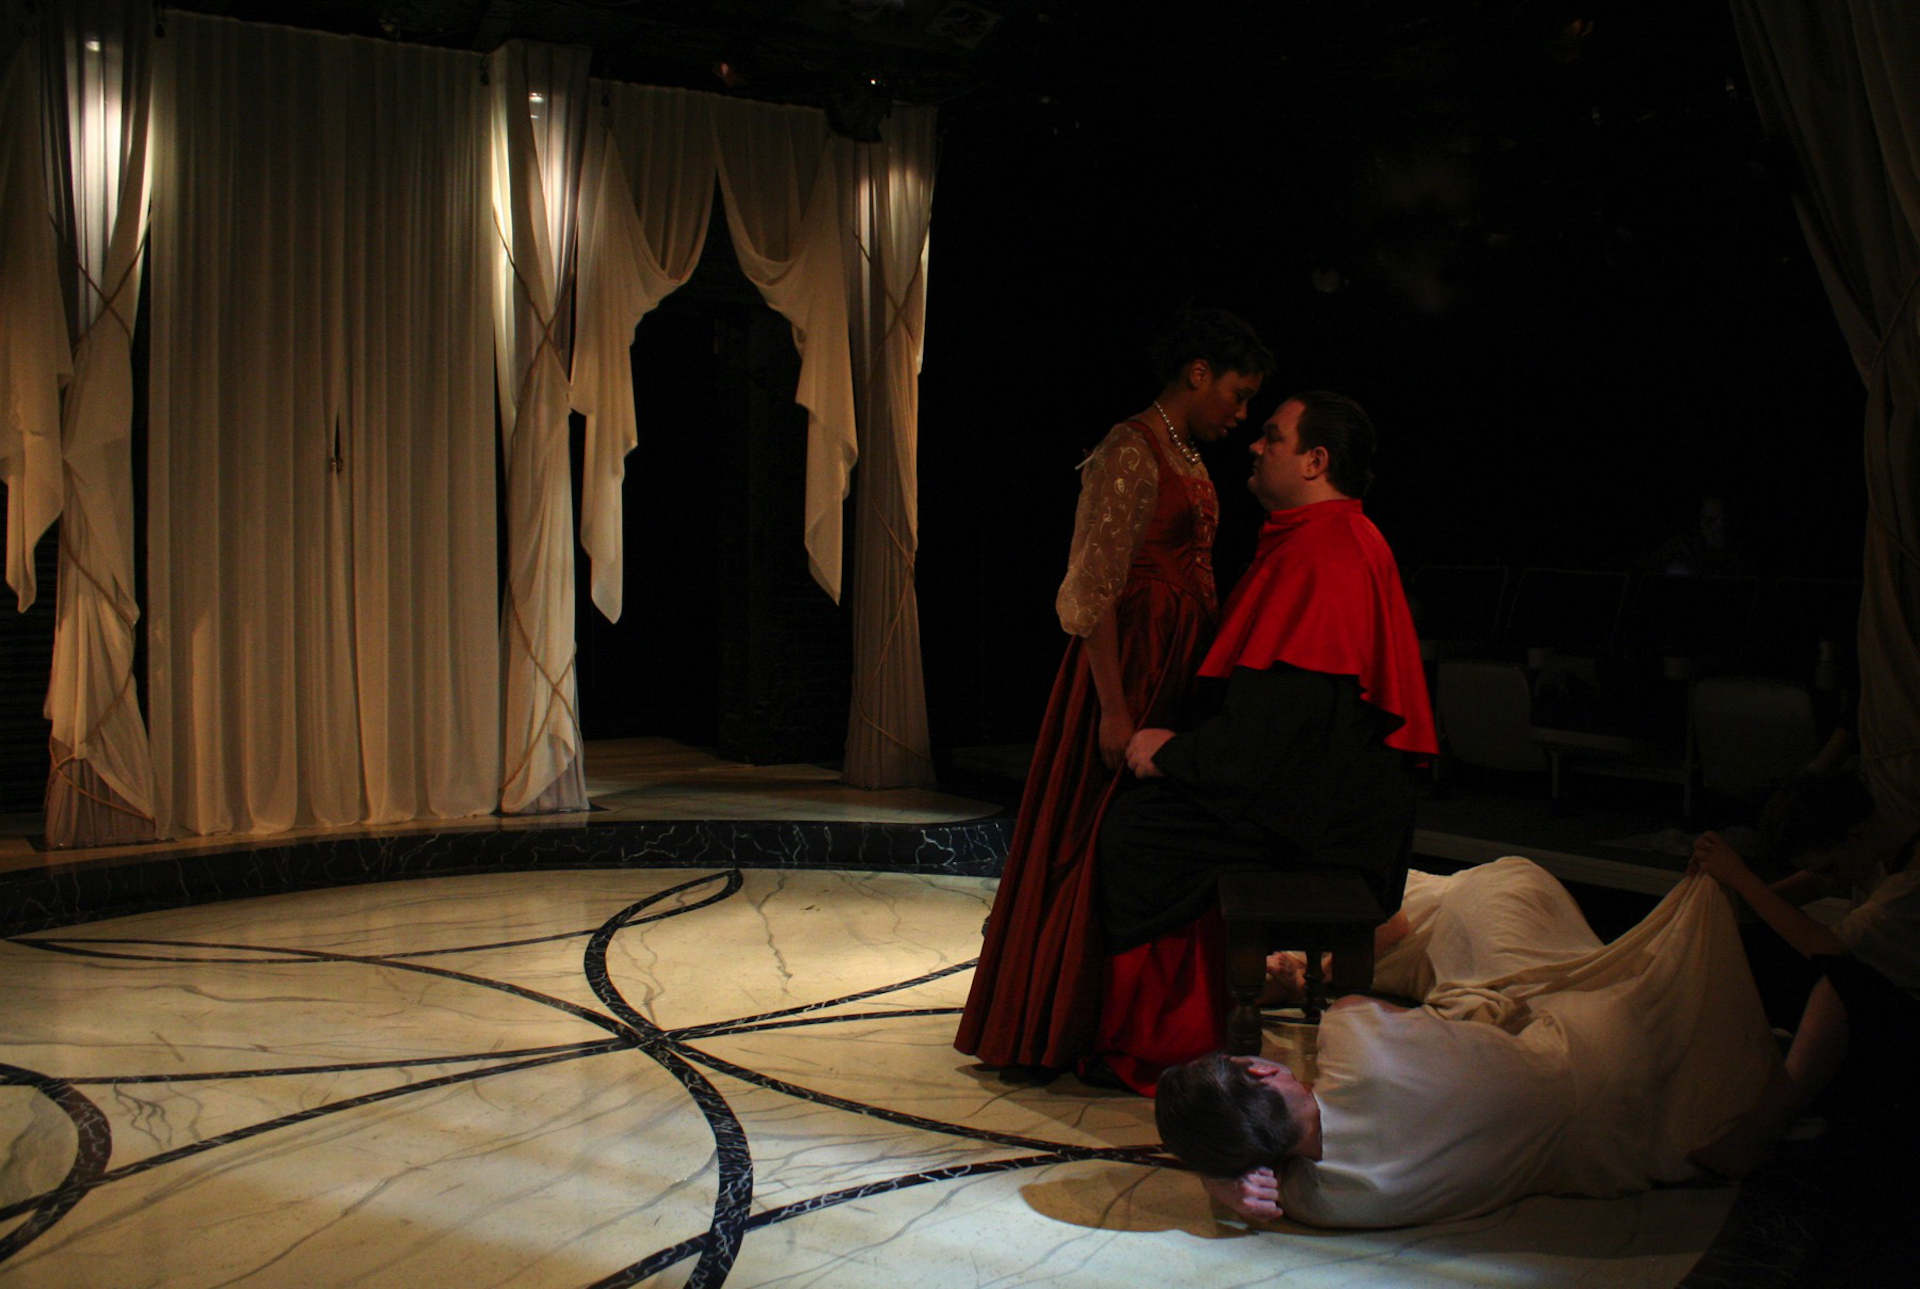 THE DUCHESS OF MALFI (Strawdog Theatre, 2012 - photo by Joe Schermoly)